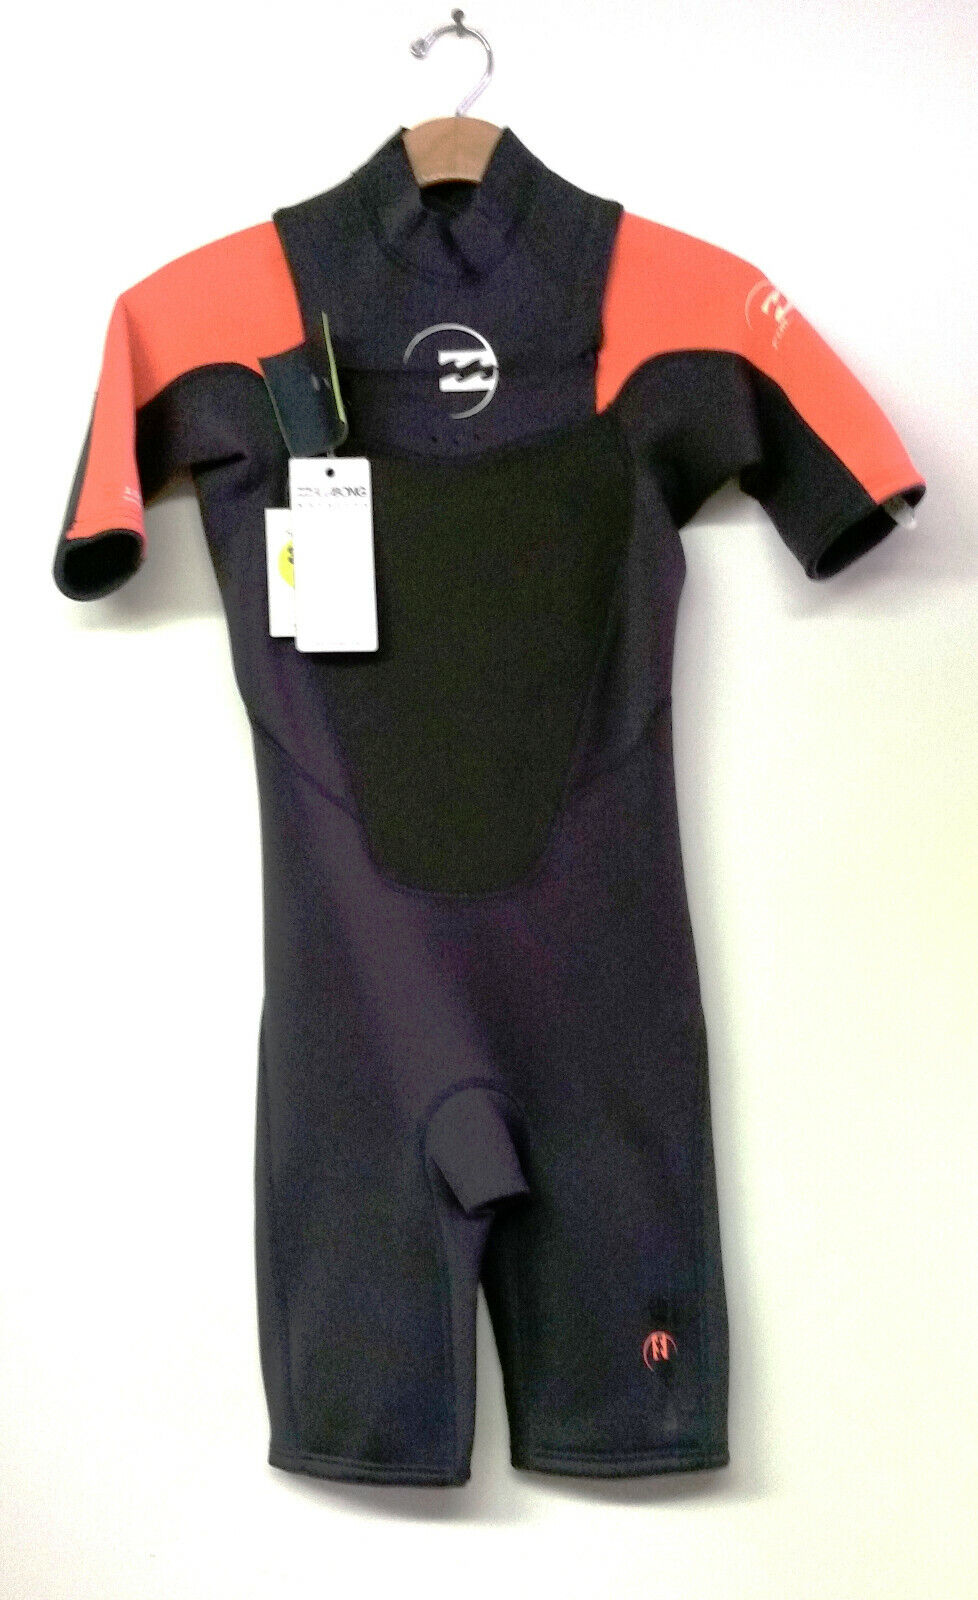 BILLABONG Youth 202 FOIL CZ  Springsuit - ORG - Size 16 - NWT  comfortable